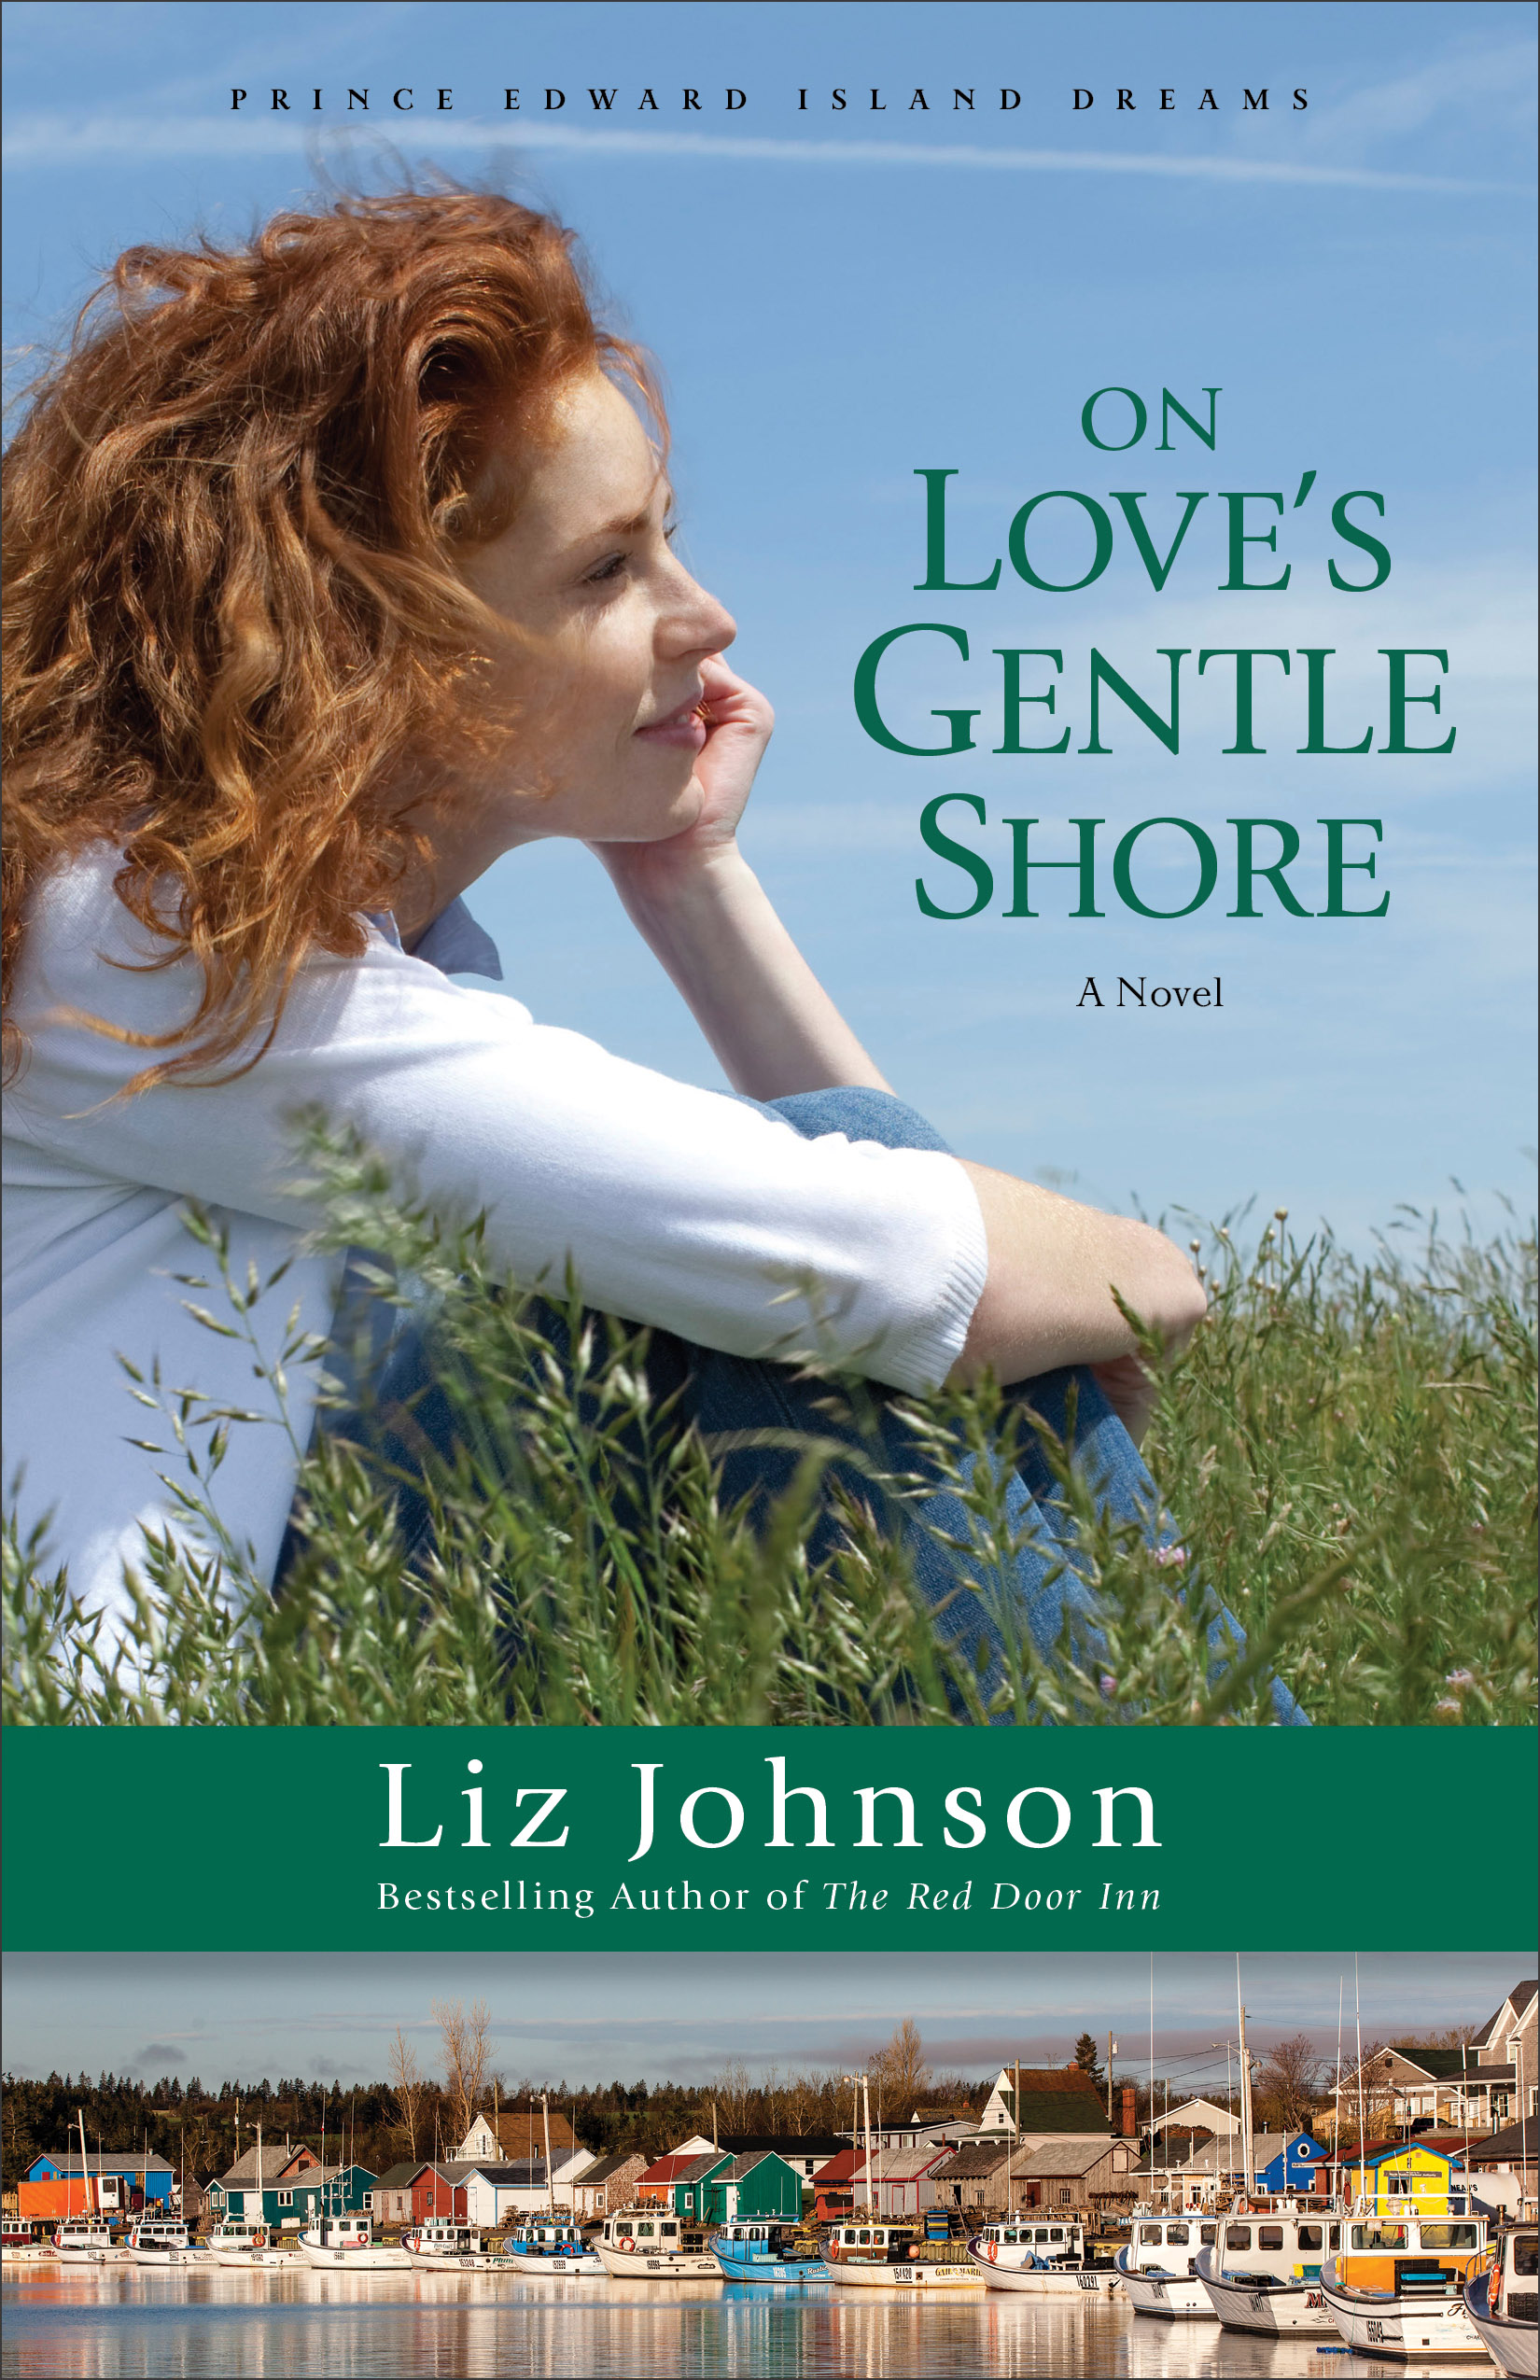 Book review of On Love's Gentle Shore by Liz Johnson (Revell) by papertapepins